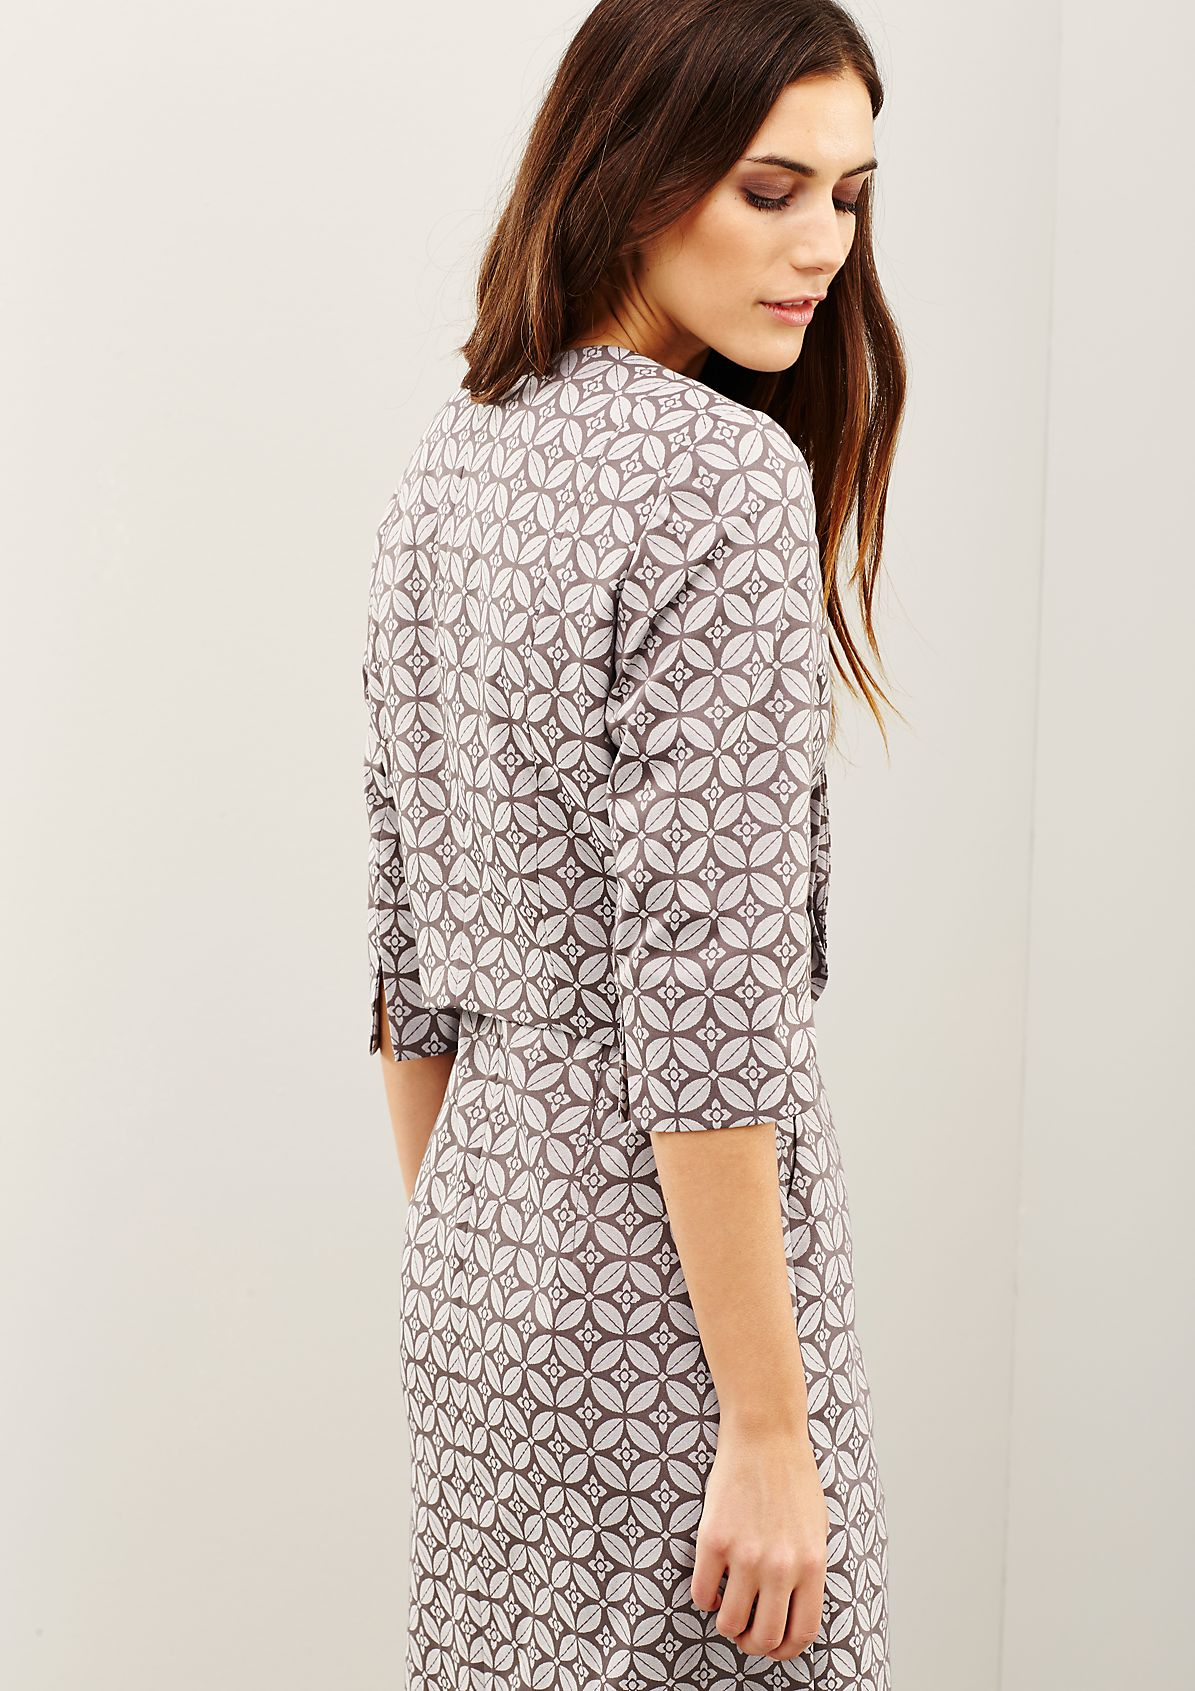 Extravagant short blazer with an exciting all-over pattern from s.Oliver